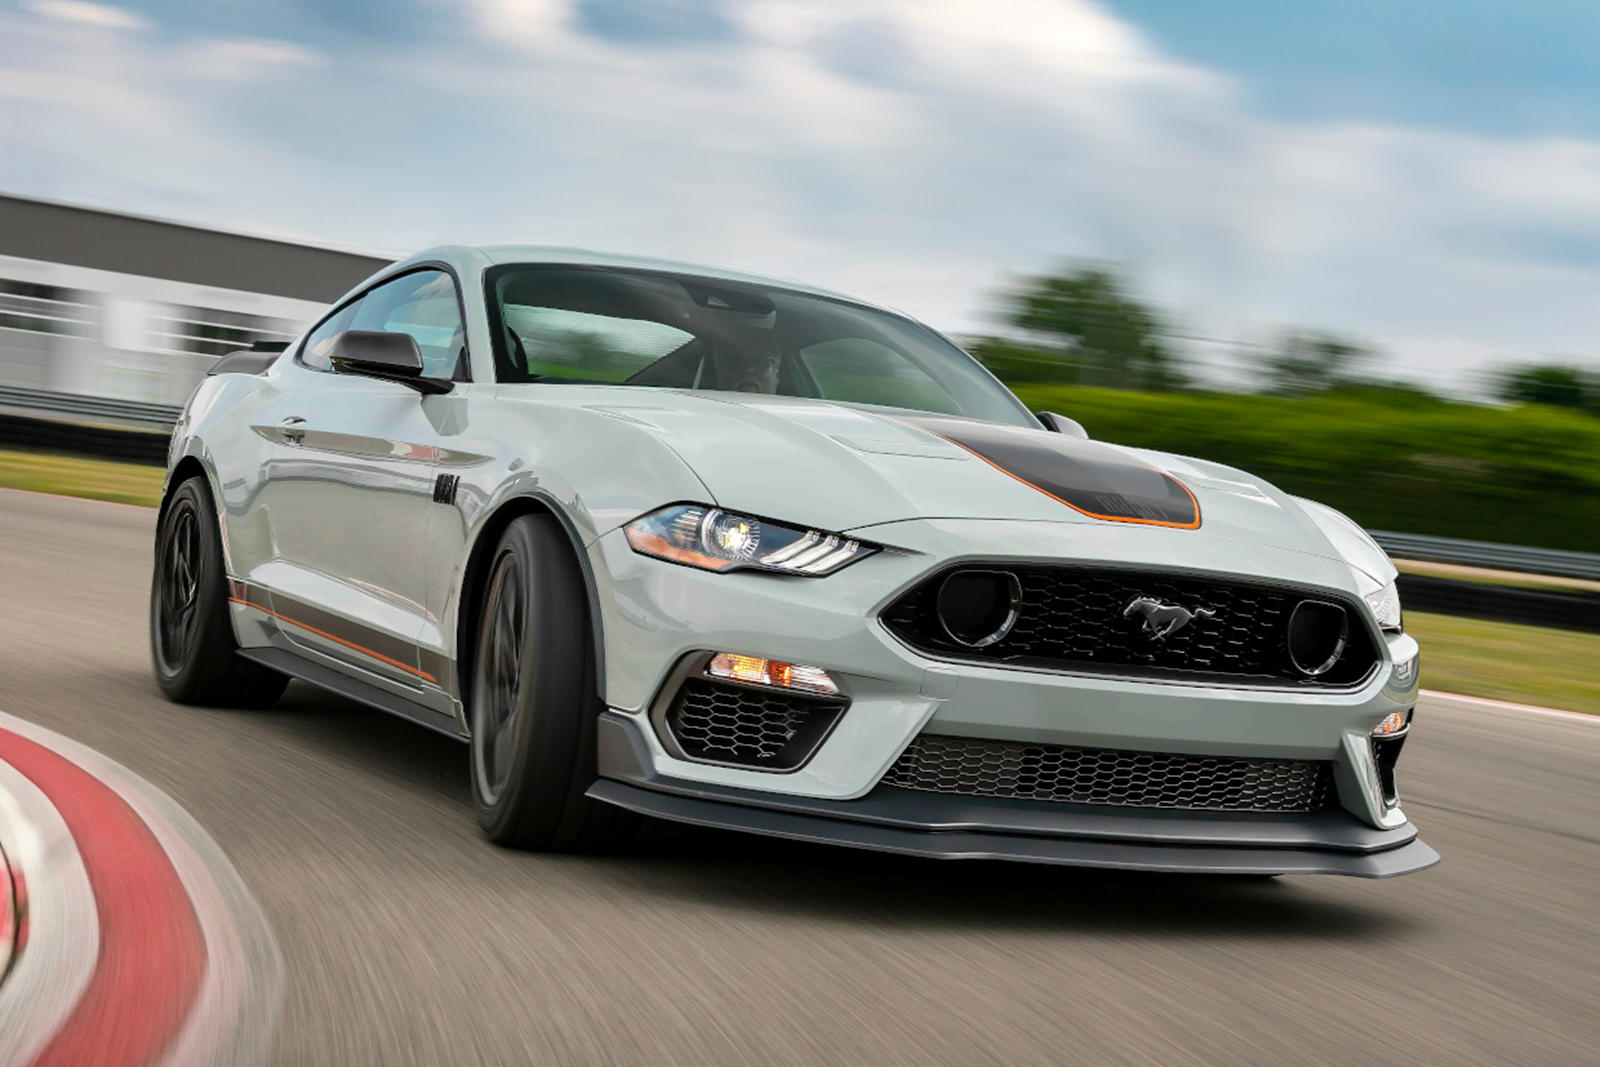 Ford Mustang Mach 1 Handling Package Is Worth Every Penny